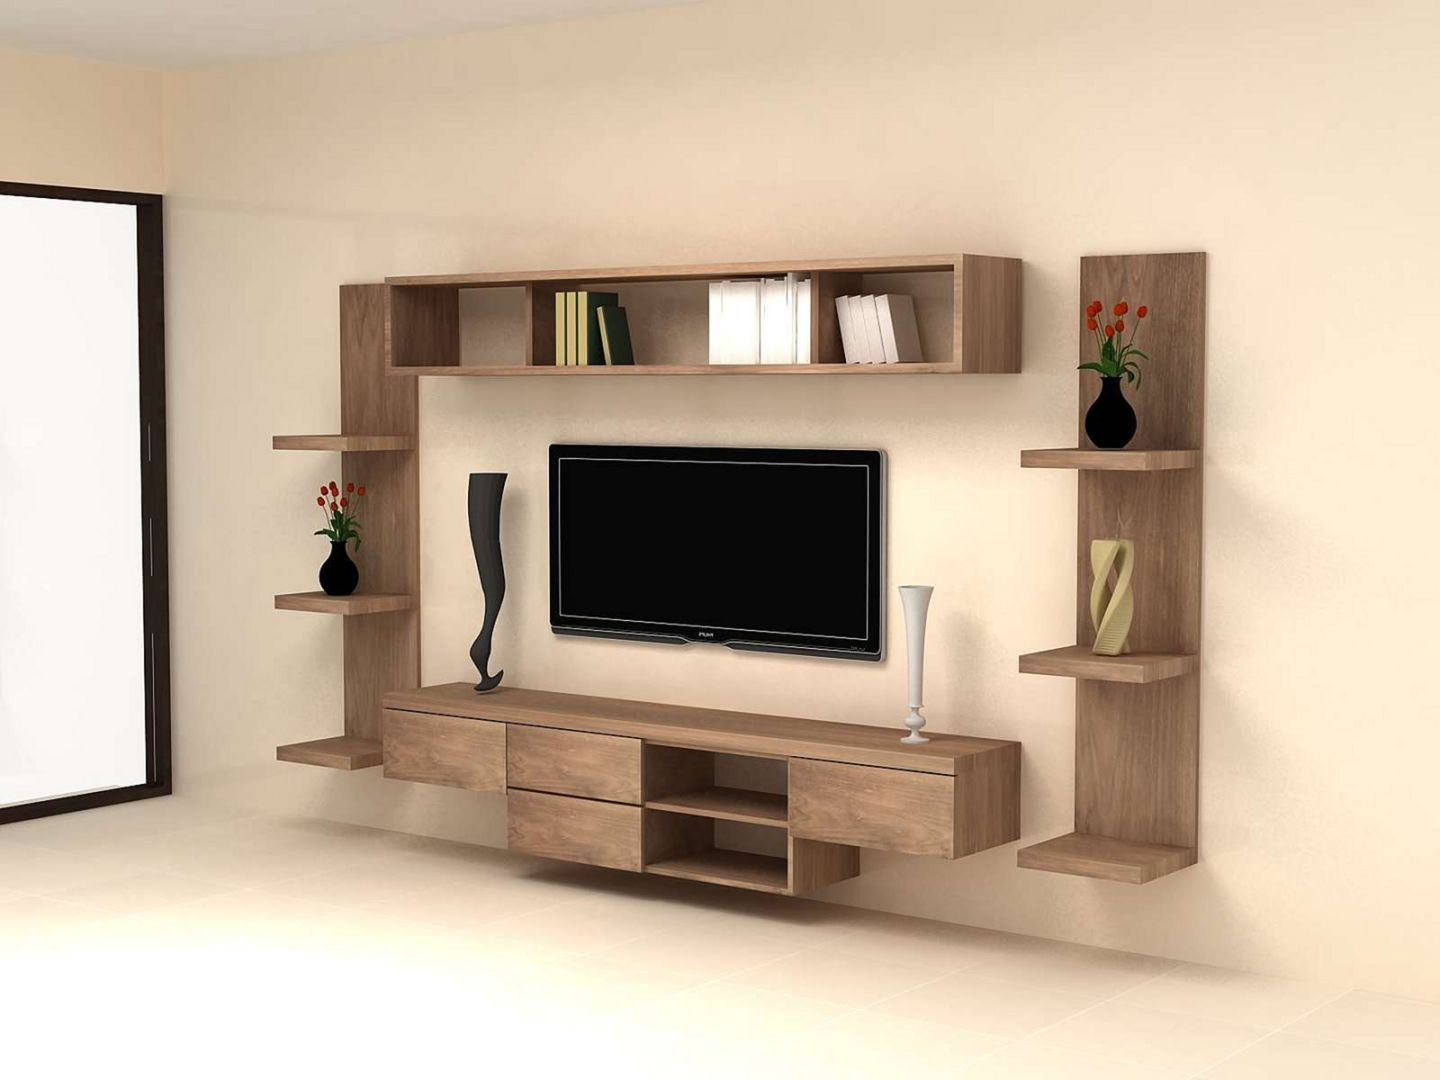 Modern Tv Cabinets Design 0251 Modern Tv Cabinets Design 0251 Design Ideas And Photos Modern Tv Wall Units Modern Tv Units Tv Cabinet Design